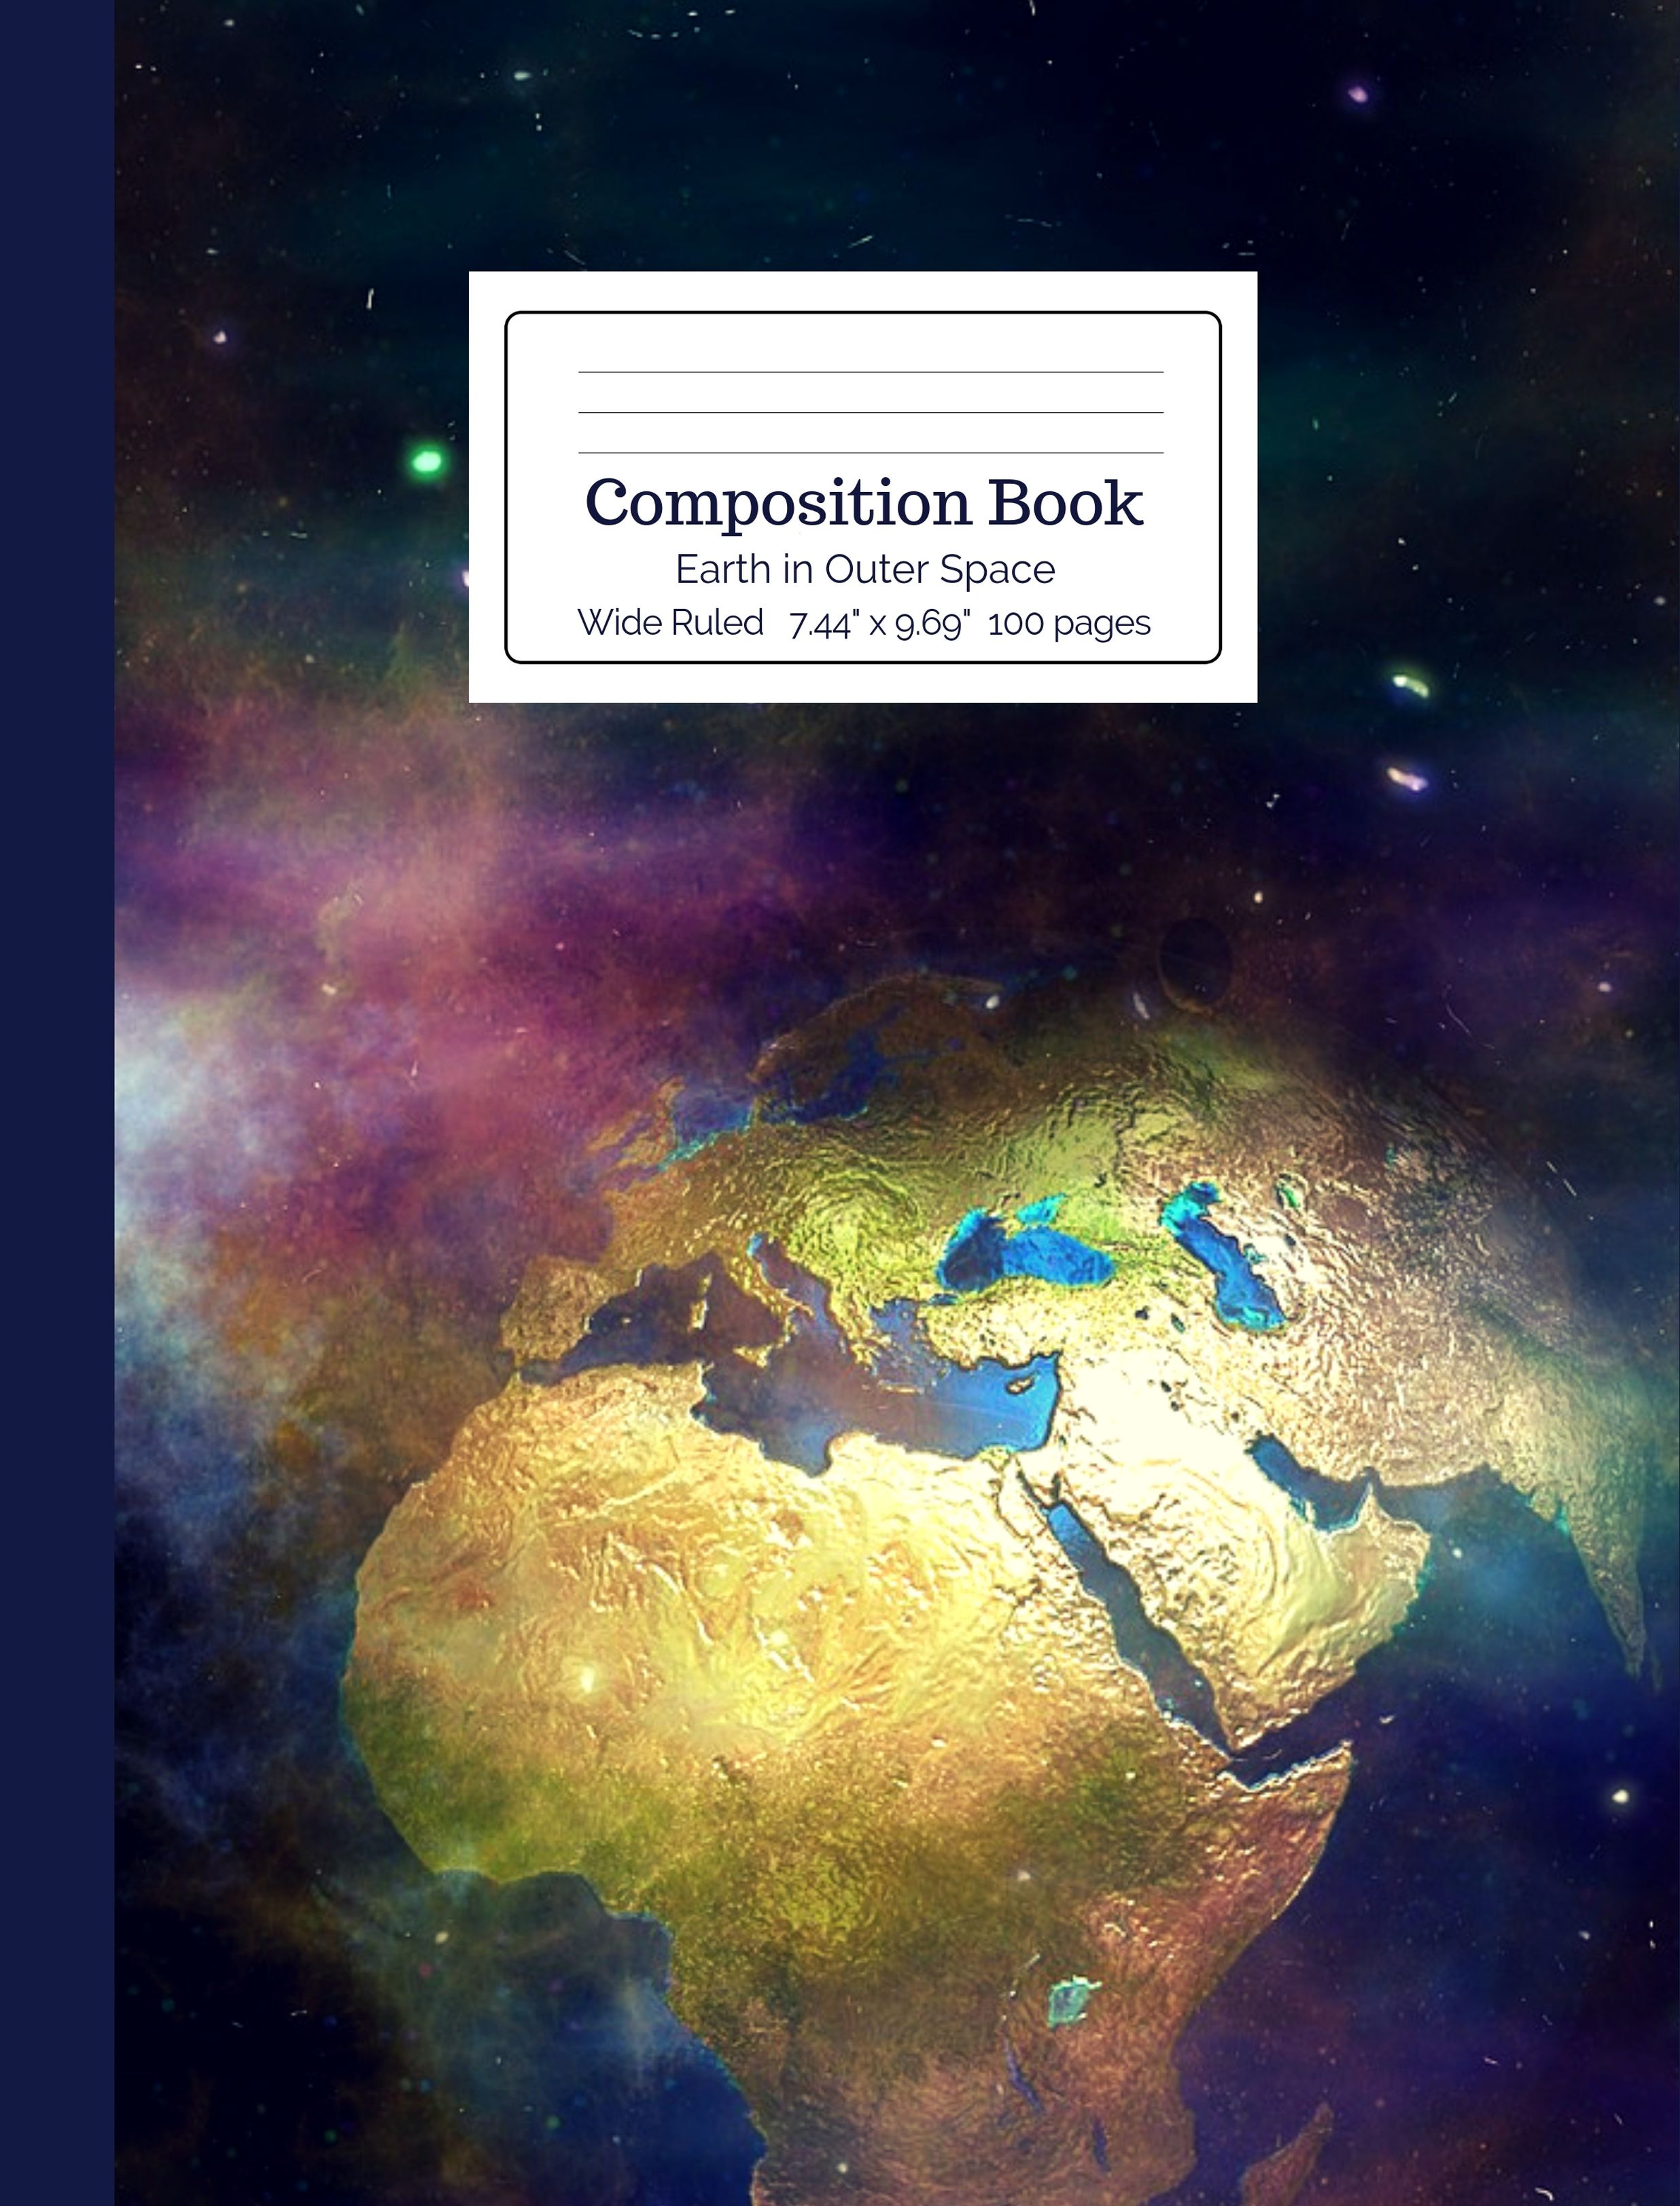 Earth in Outer Space Composition Book